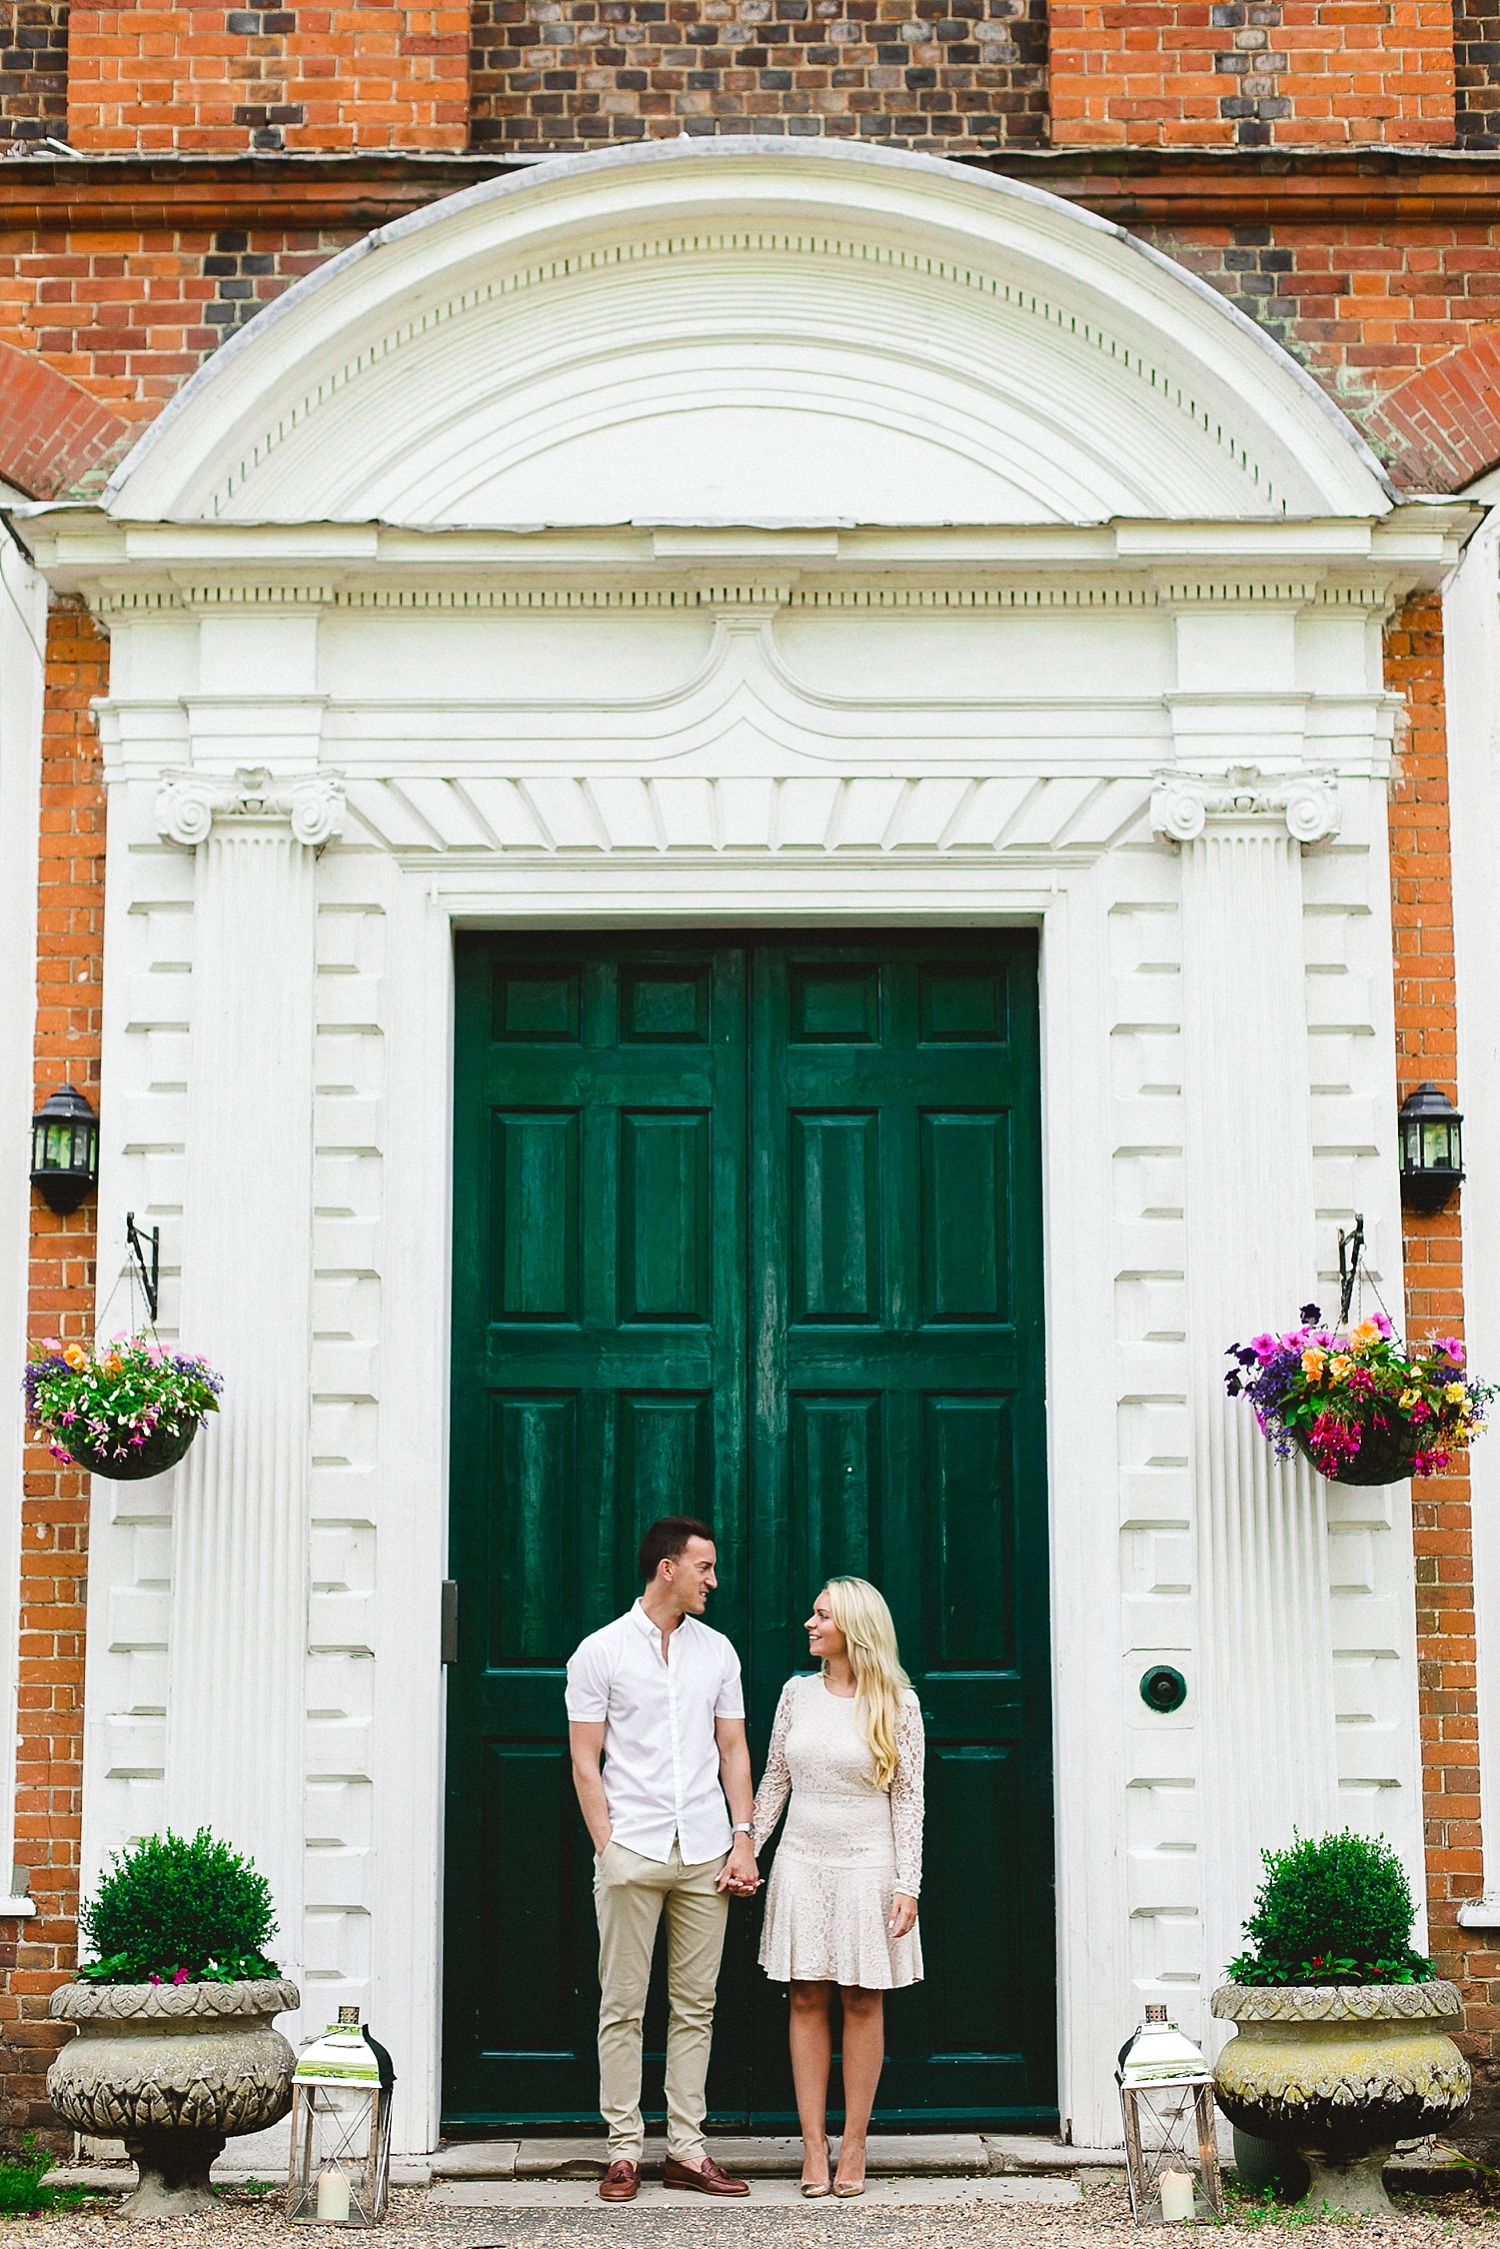 Gosfield_Hall_Wedding_Photographer_0007.jpg